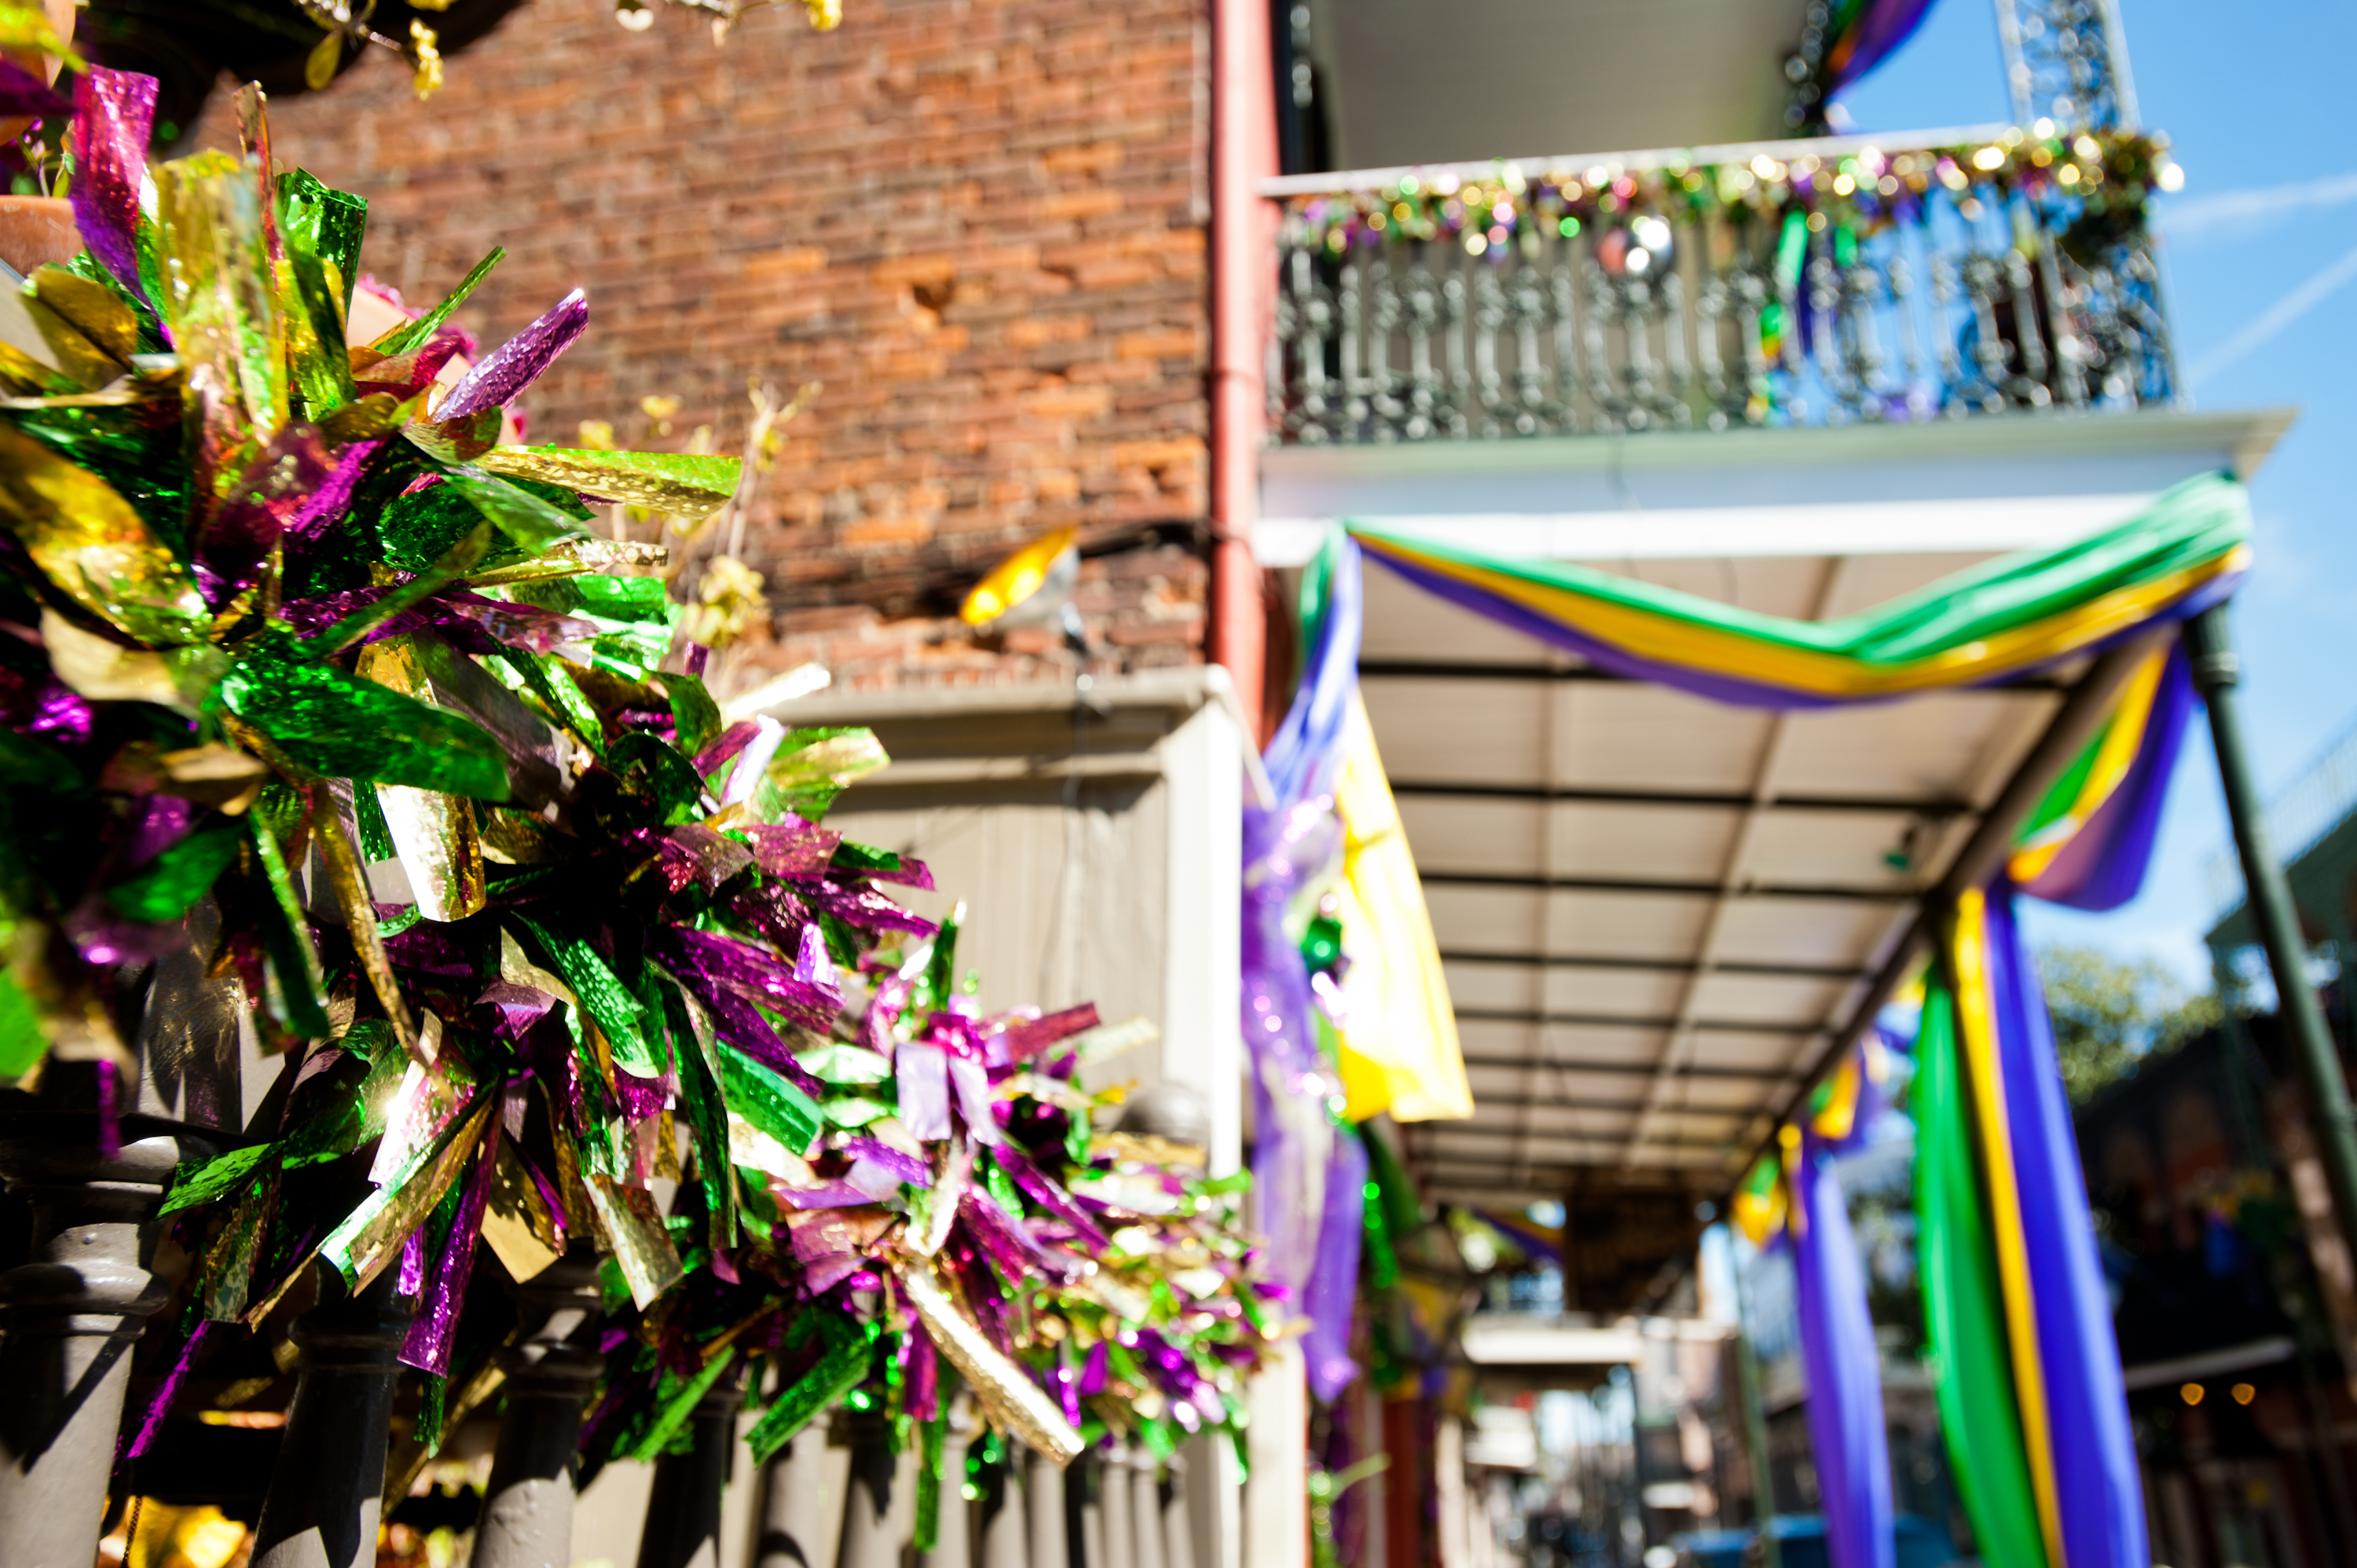 FileFrench Quarter Decorations for Mardi Gras